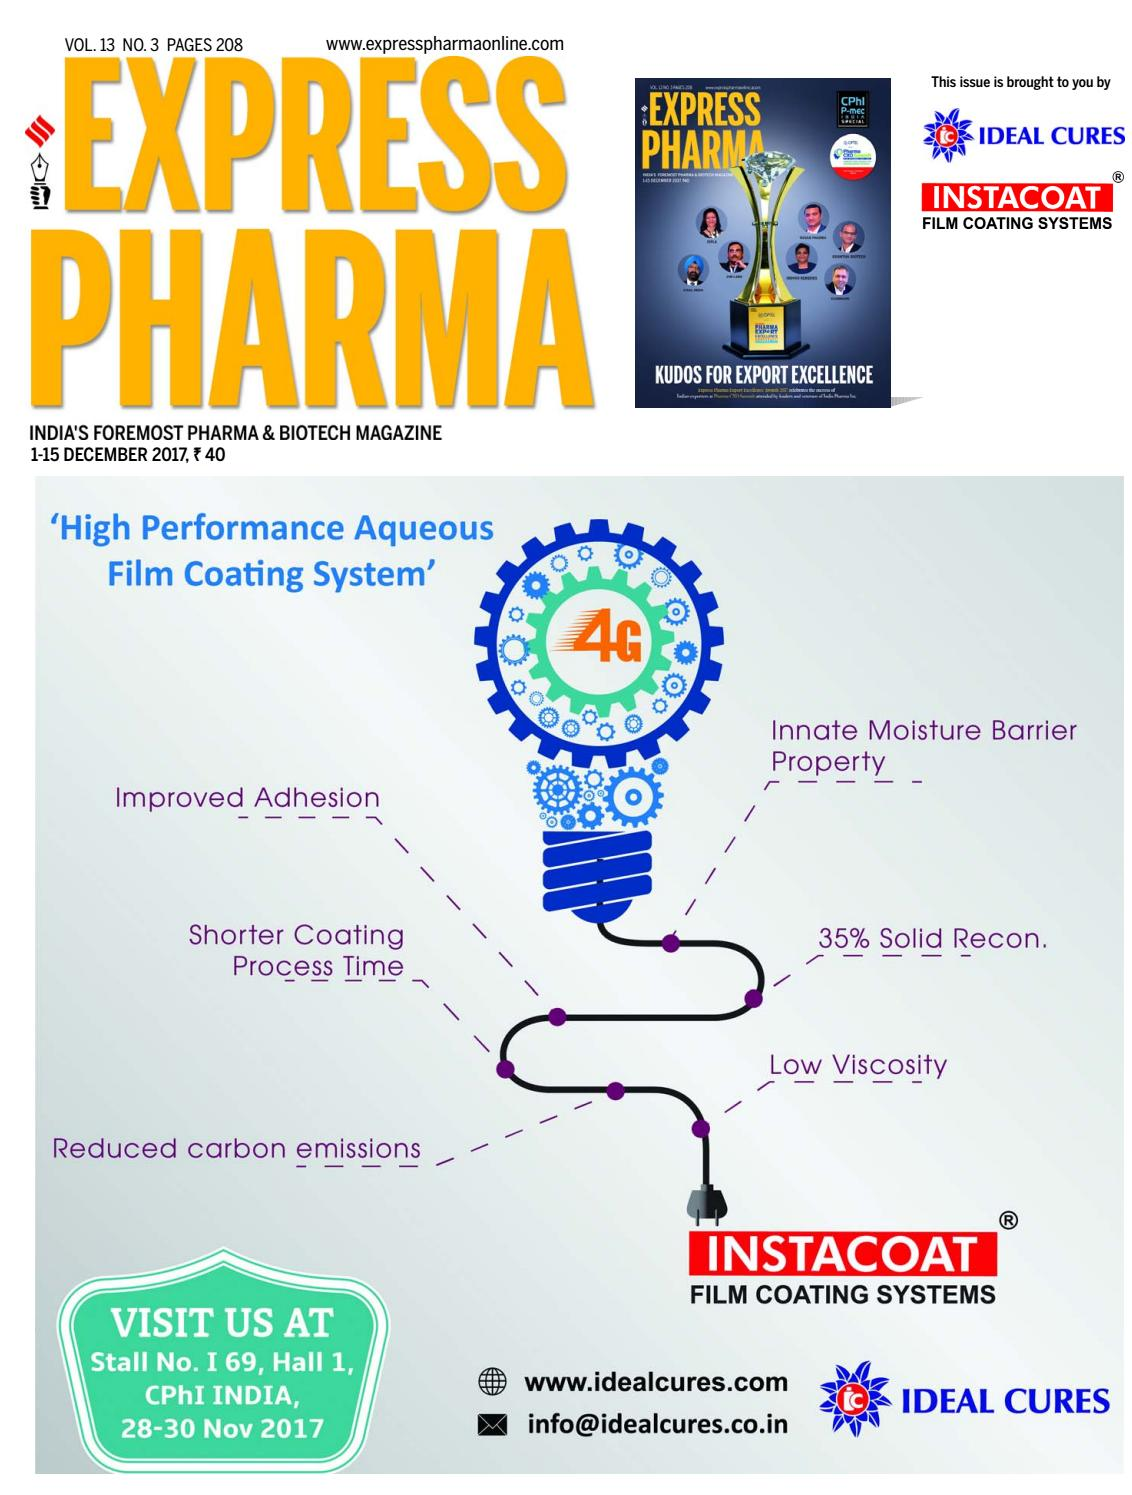 Express Pharma (Vol 13, No 3) December 1-15, 2017 by Indian